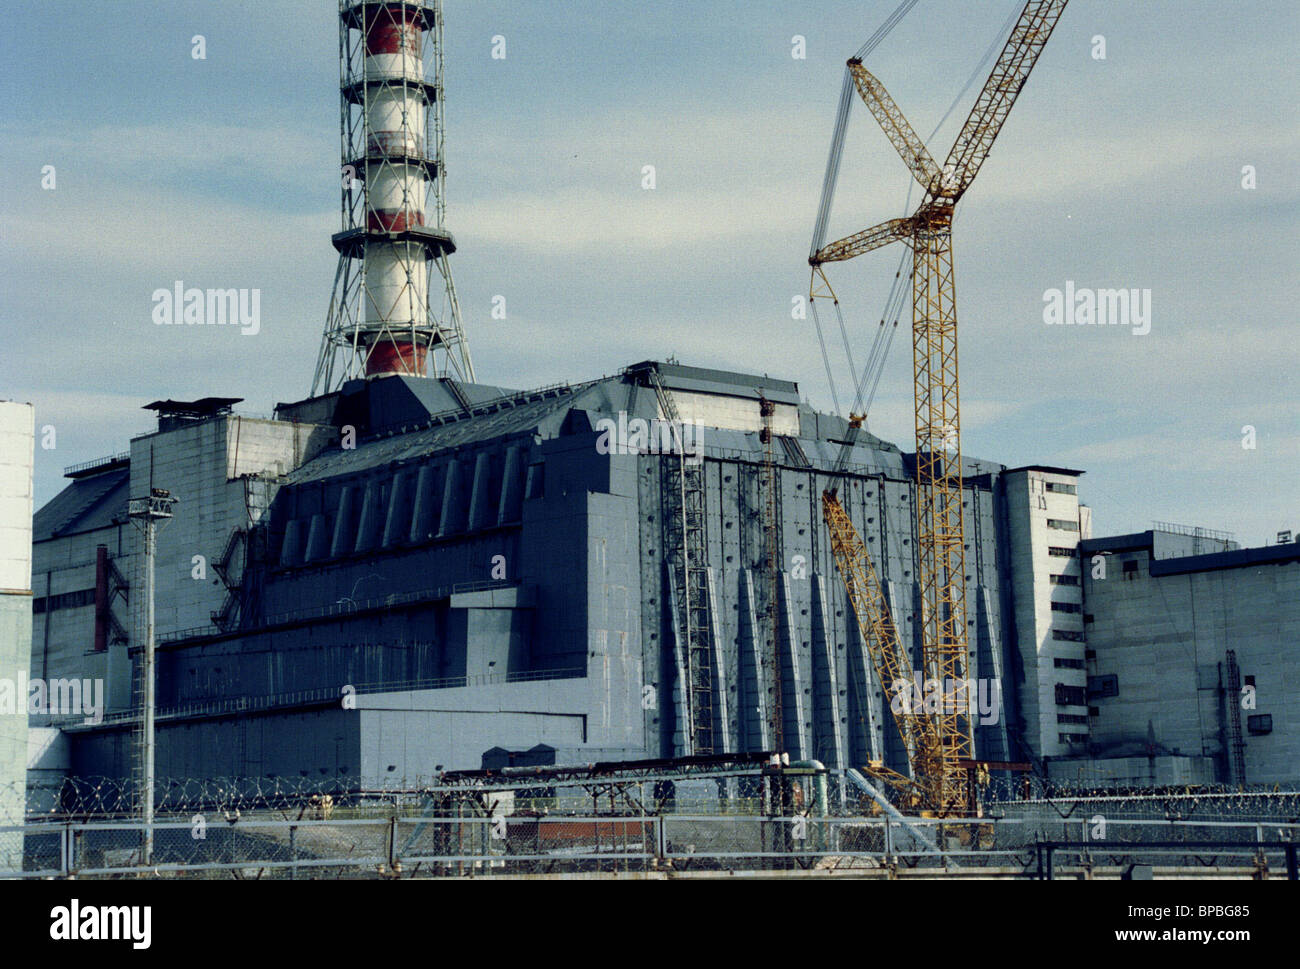 Chernobyl N-plant Unit 4 10 years after the disaster. - Stock Image